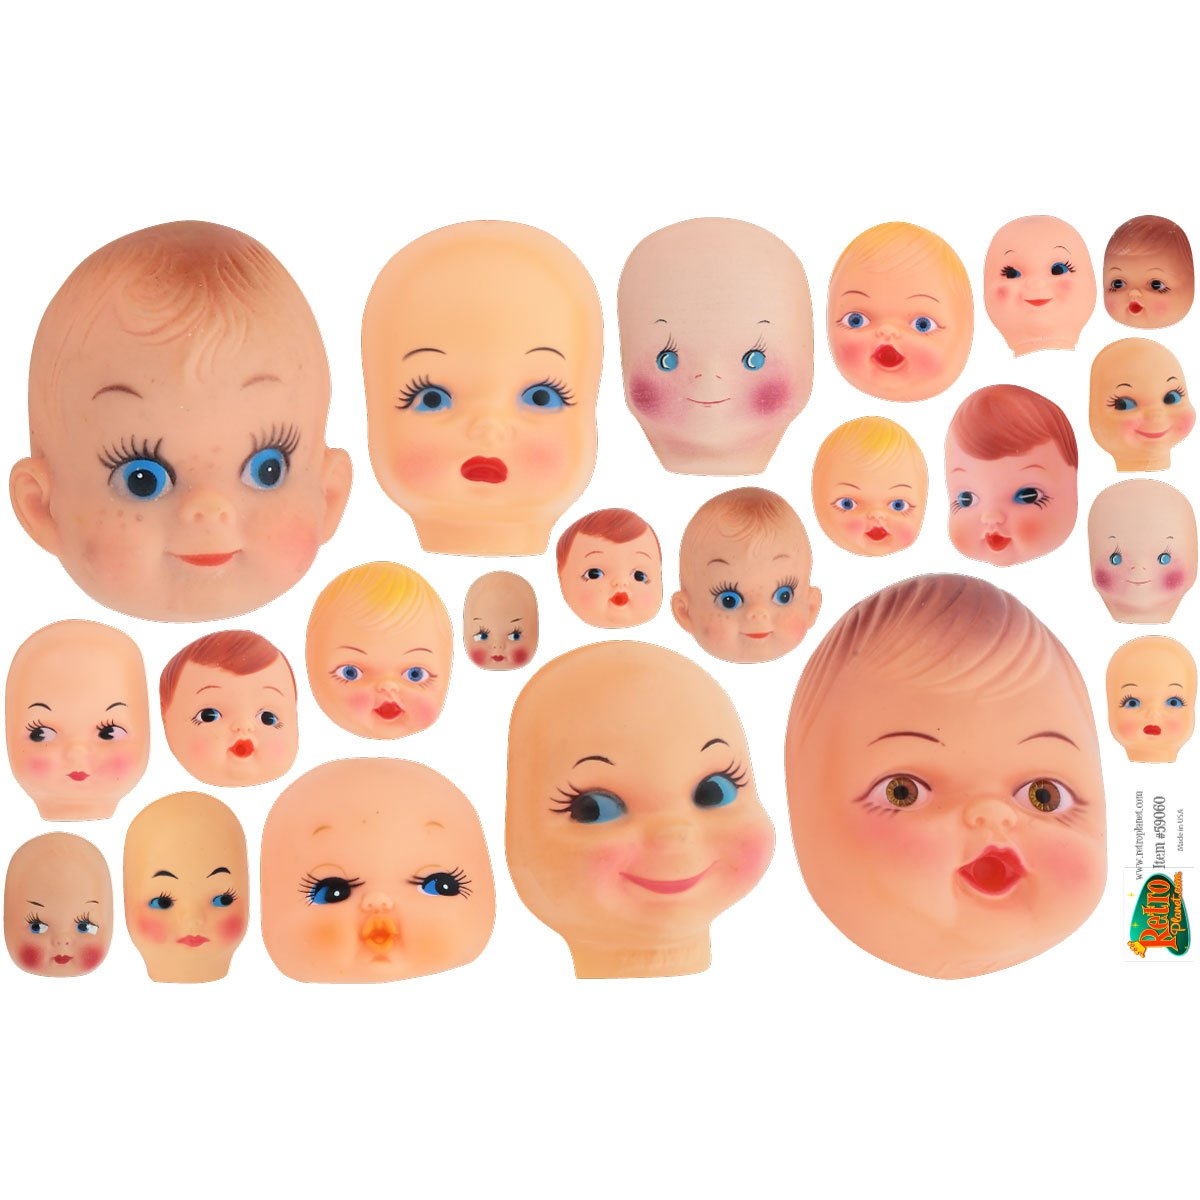 Creepy Doll Heads Vinyl Sticker Sheet Assorted Car and Laptop Decals